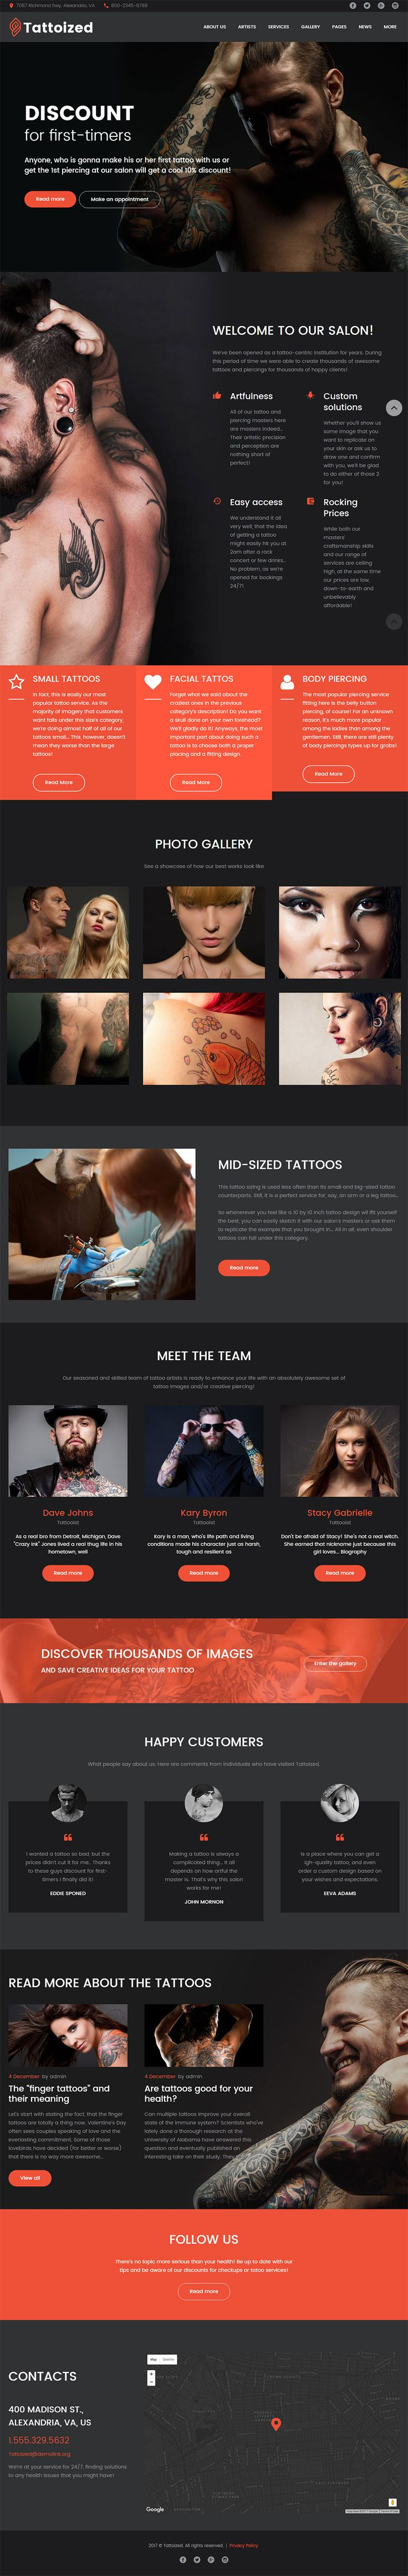 Tattoo Salon Wordpress Theme, exclusively forged in the furnace for body art, piercing and tattoo salons.